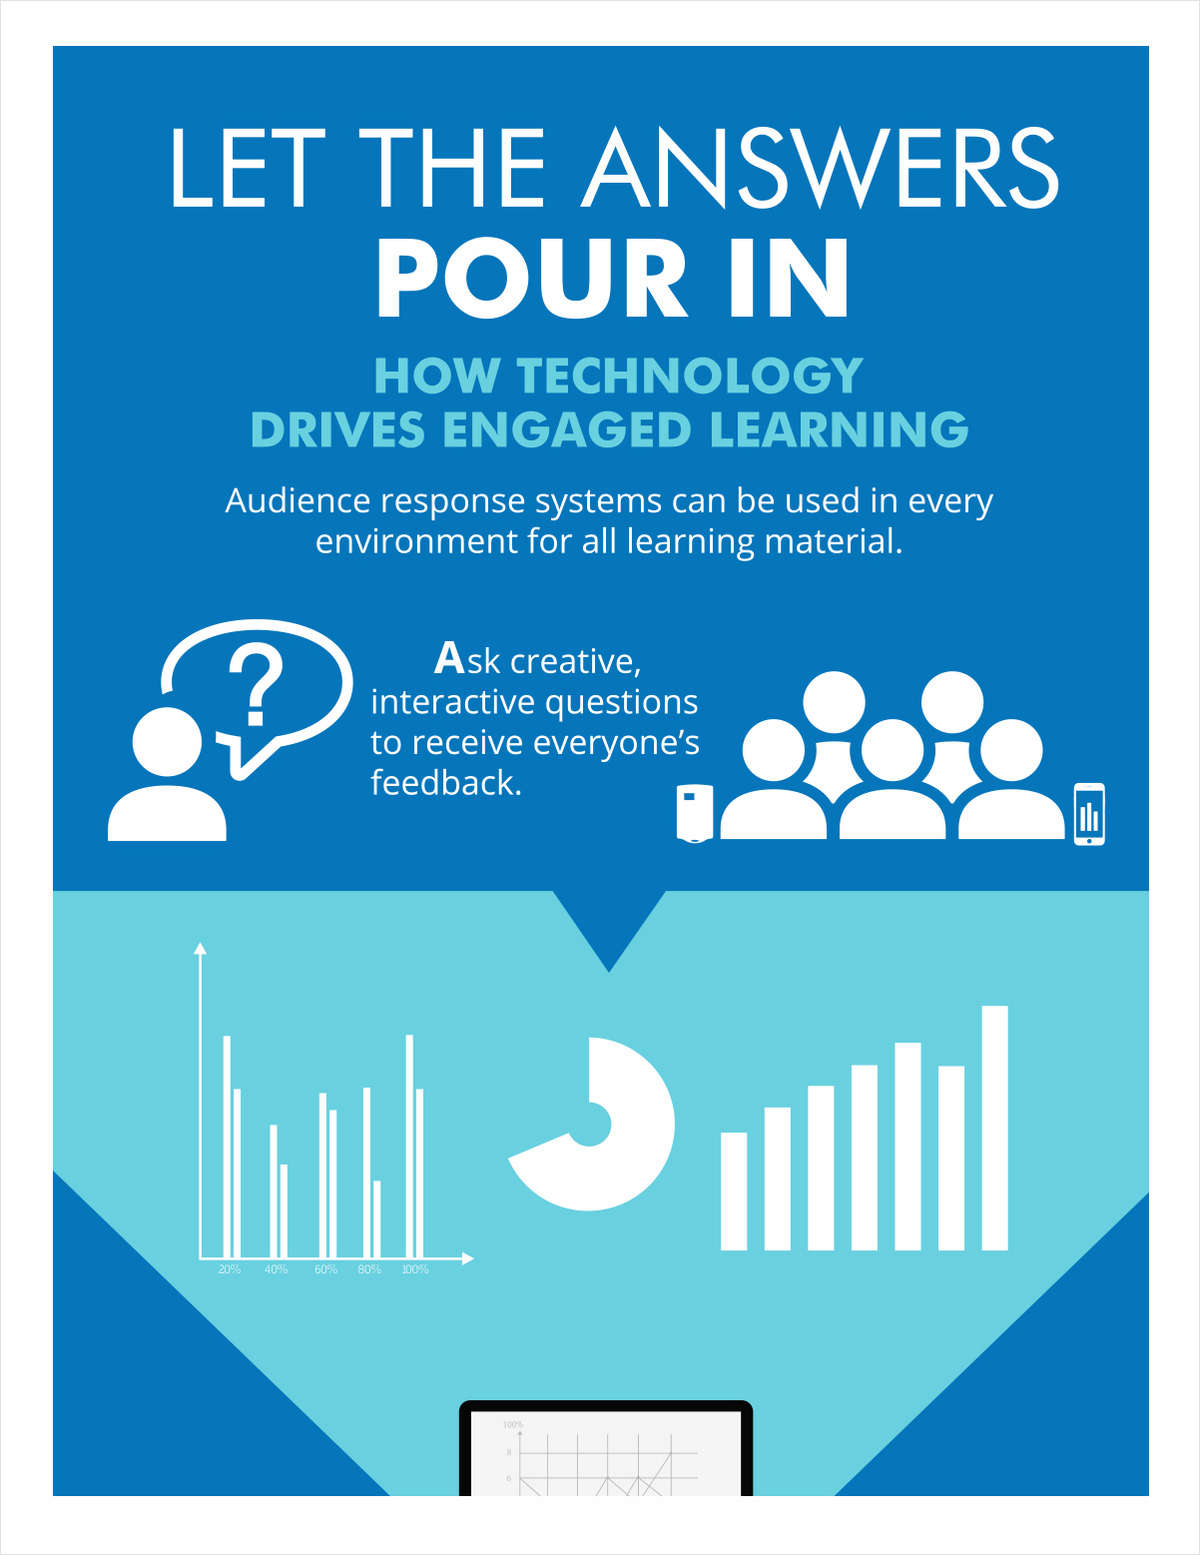 Let the Answers Pour In: How Technology Drives Engaged Learning